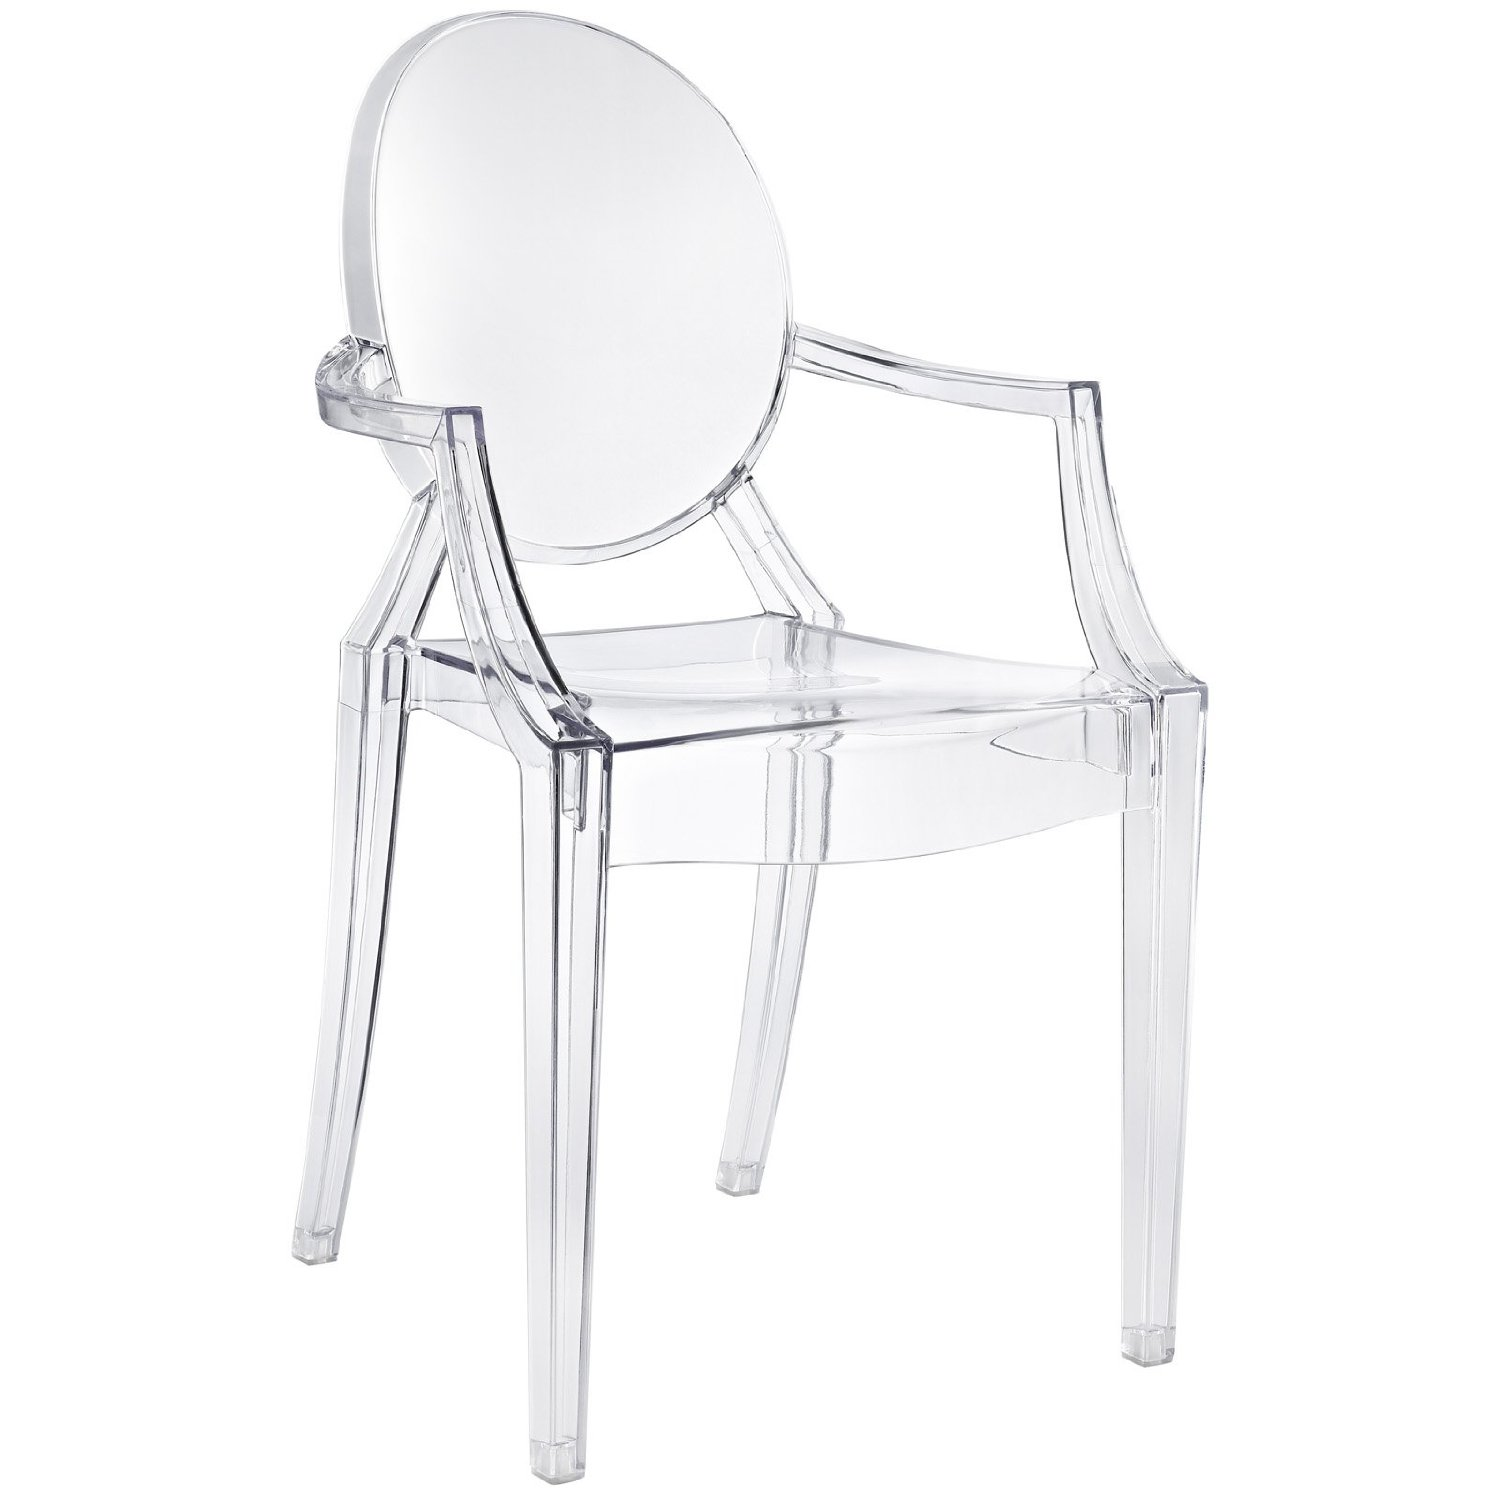 Who else but Philippe Starck would dare mess with a king  Reinventing the  classic Louis XVI armchair for Kartell  the playful Louis Ghost Armchair   2002   Ourso Designs  History Lesson  Louis Ghost Chair. Philippe Starck Ghost Chair Wikipedia. Home Design Ideas